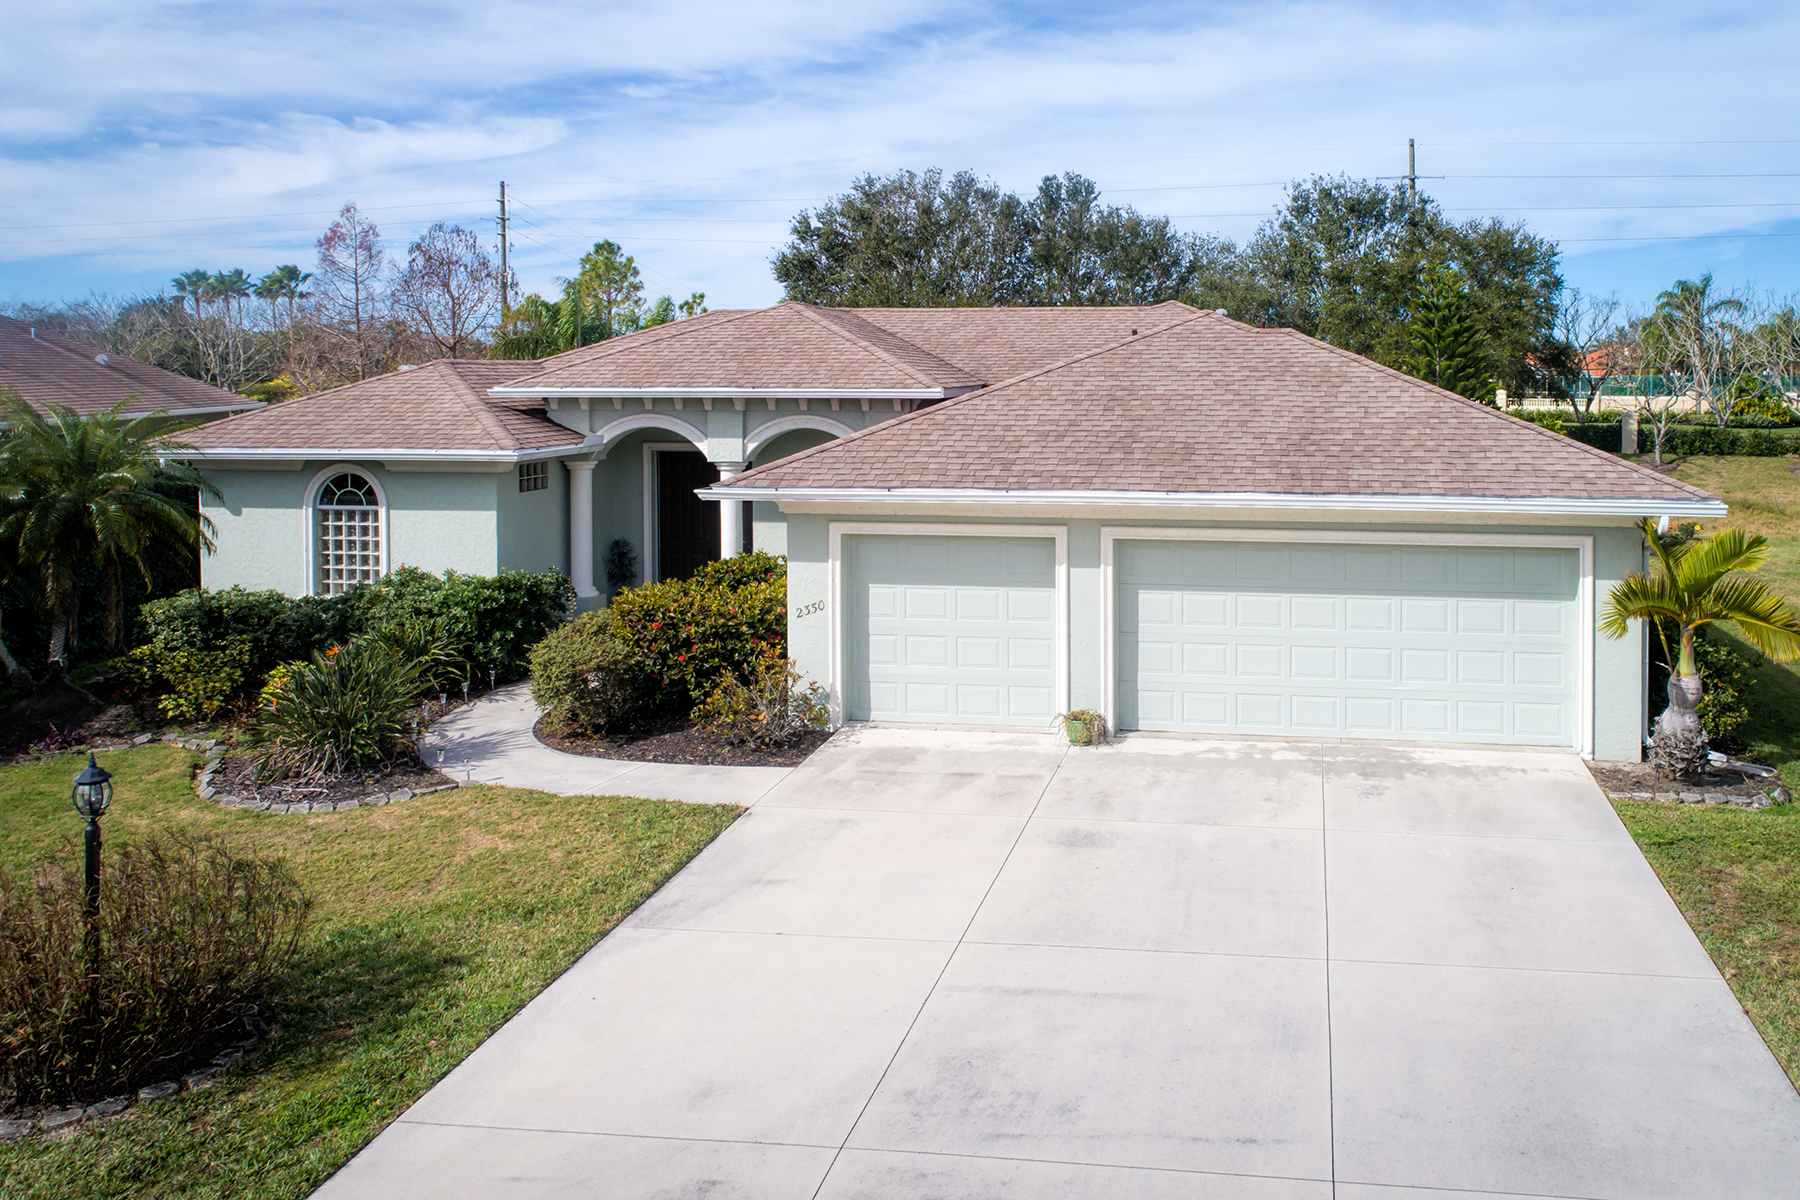 Single Family Home for Sale at LAUREL MEADOWS 2350 Vintage St, Sarasota, Florida, 34240 United States